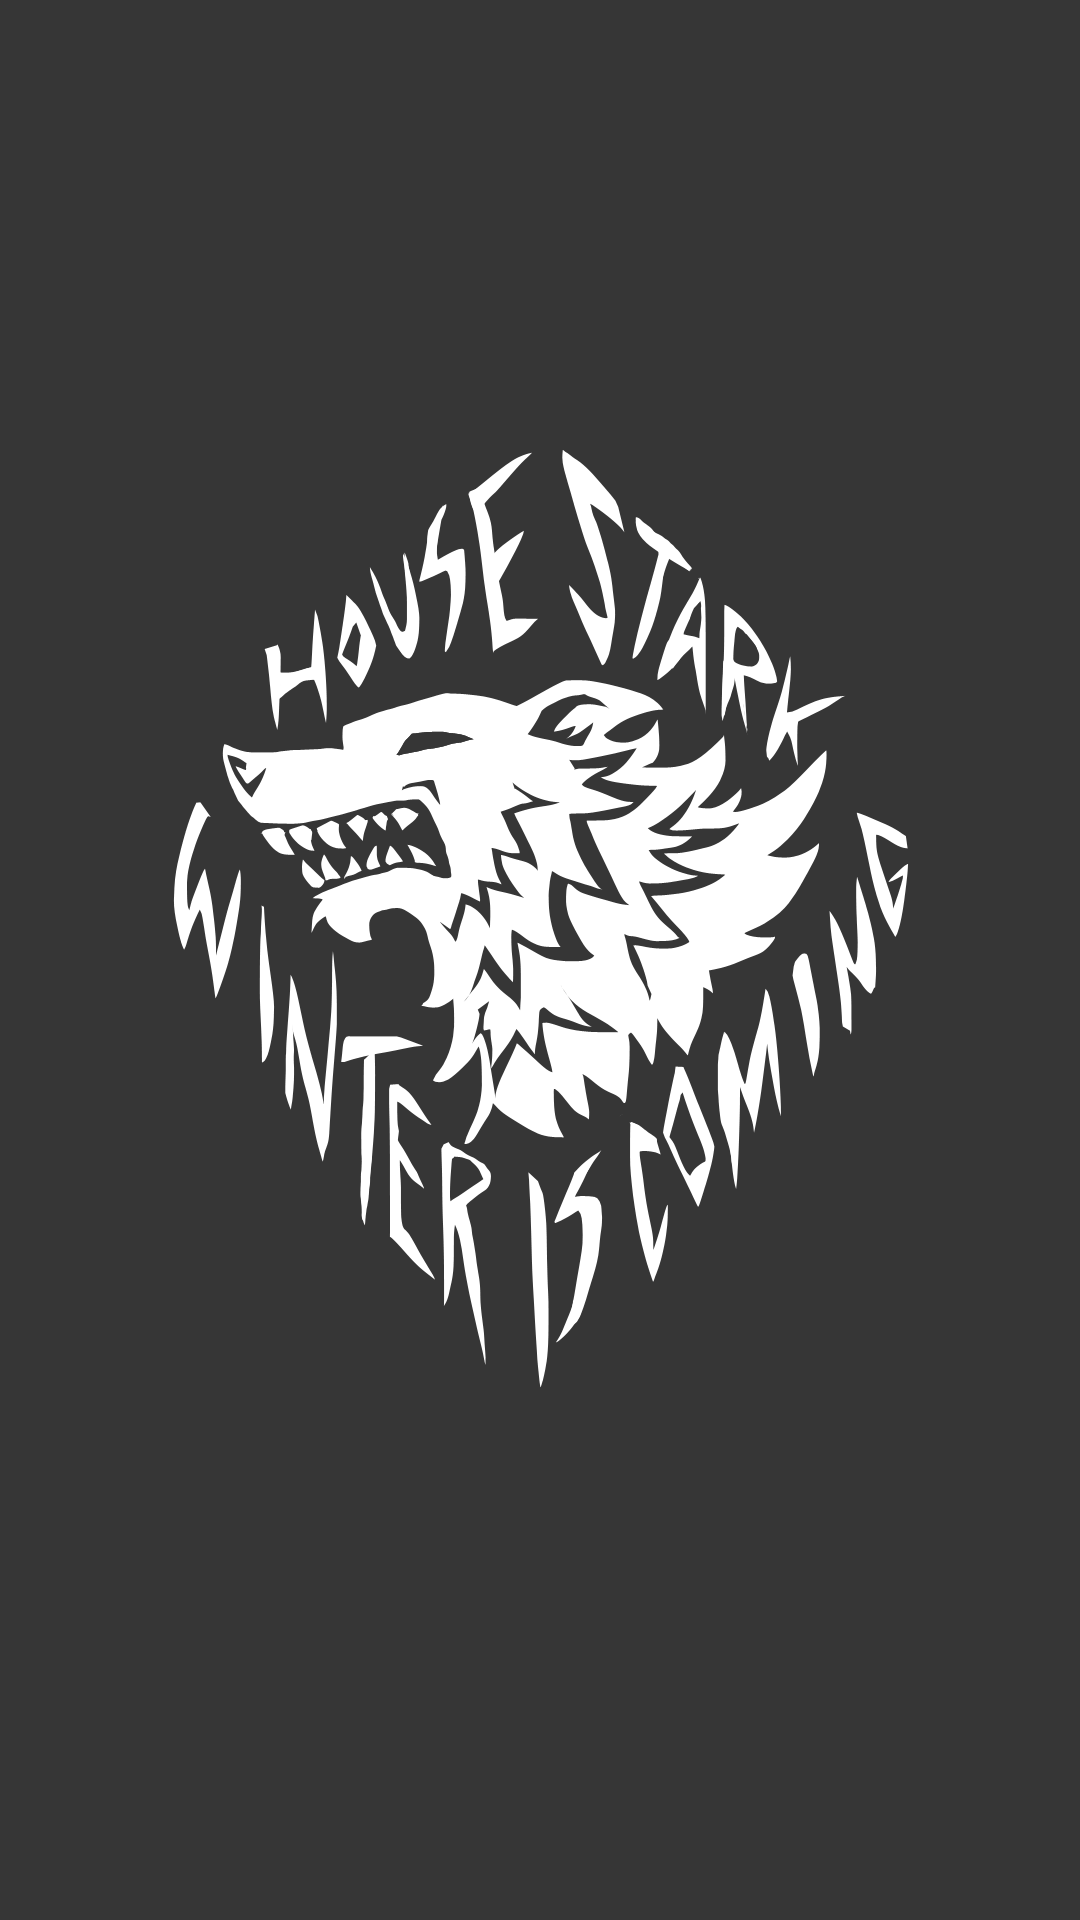 Games of Thrones: sfondi per smartphone android e apple ... House Stark Wallpaper Android